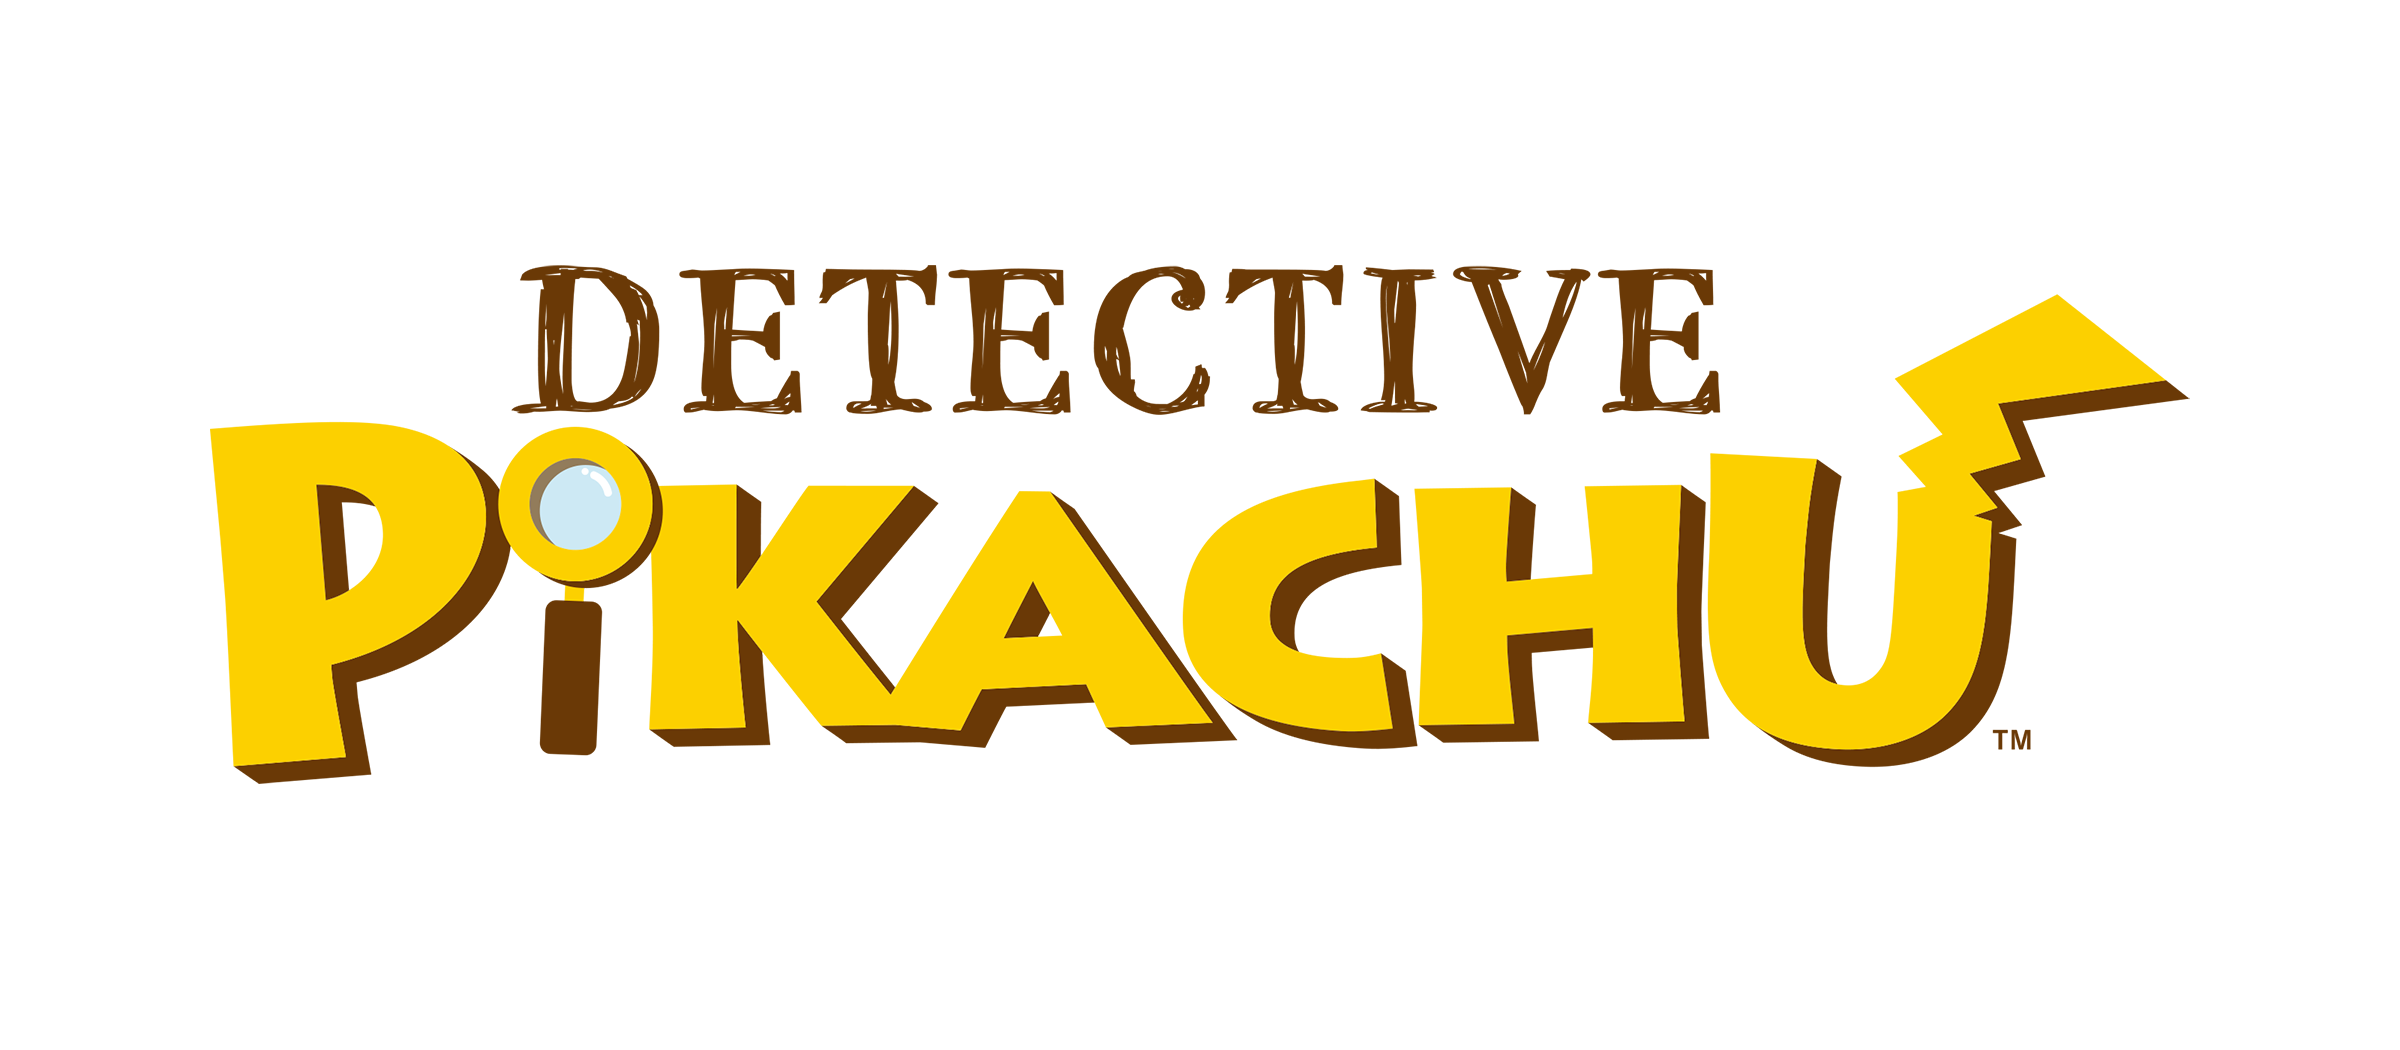 Tim Detective Logo photo - 1